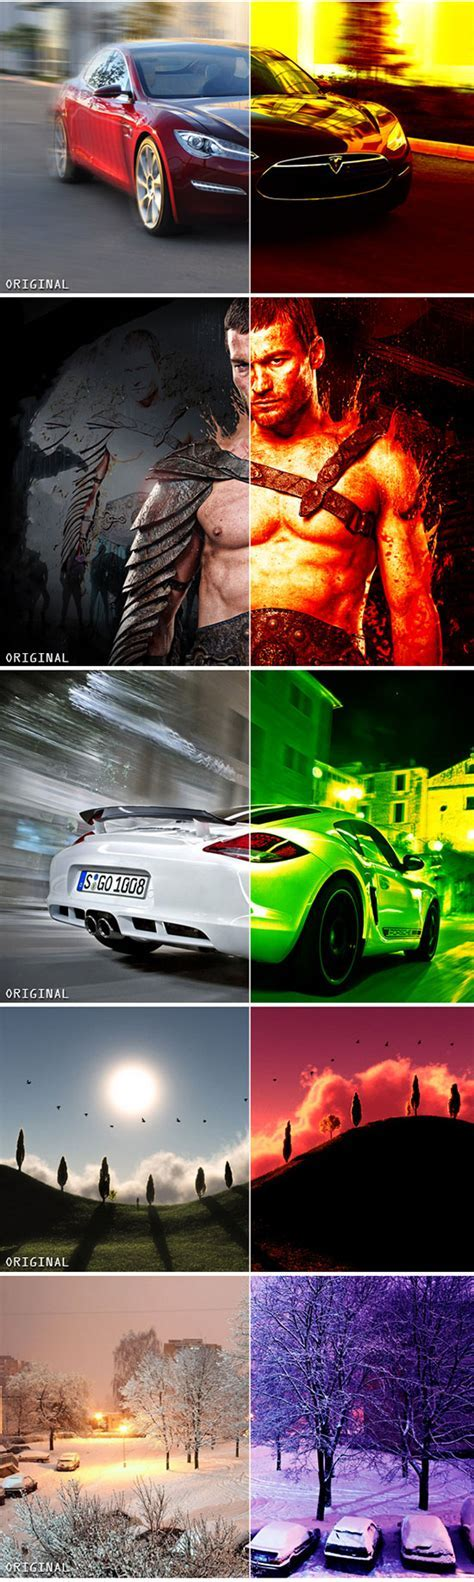 Extremely Useful Best Free Photoshop Actions For 2014